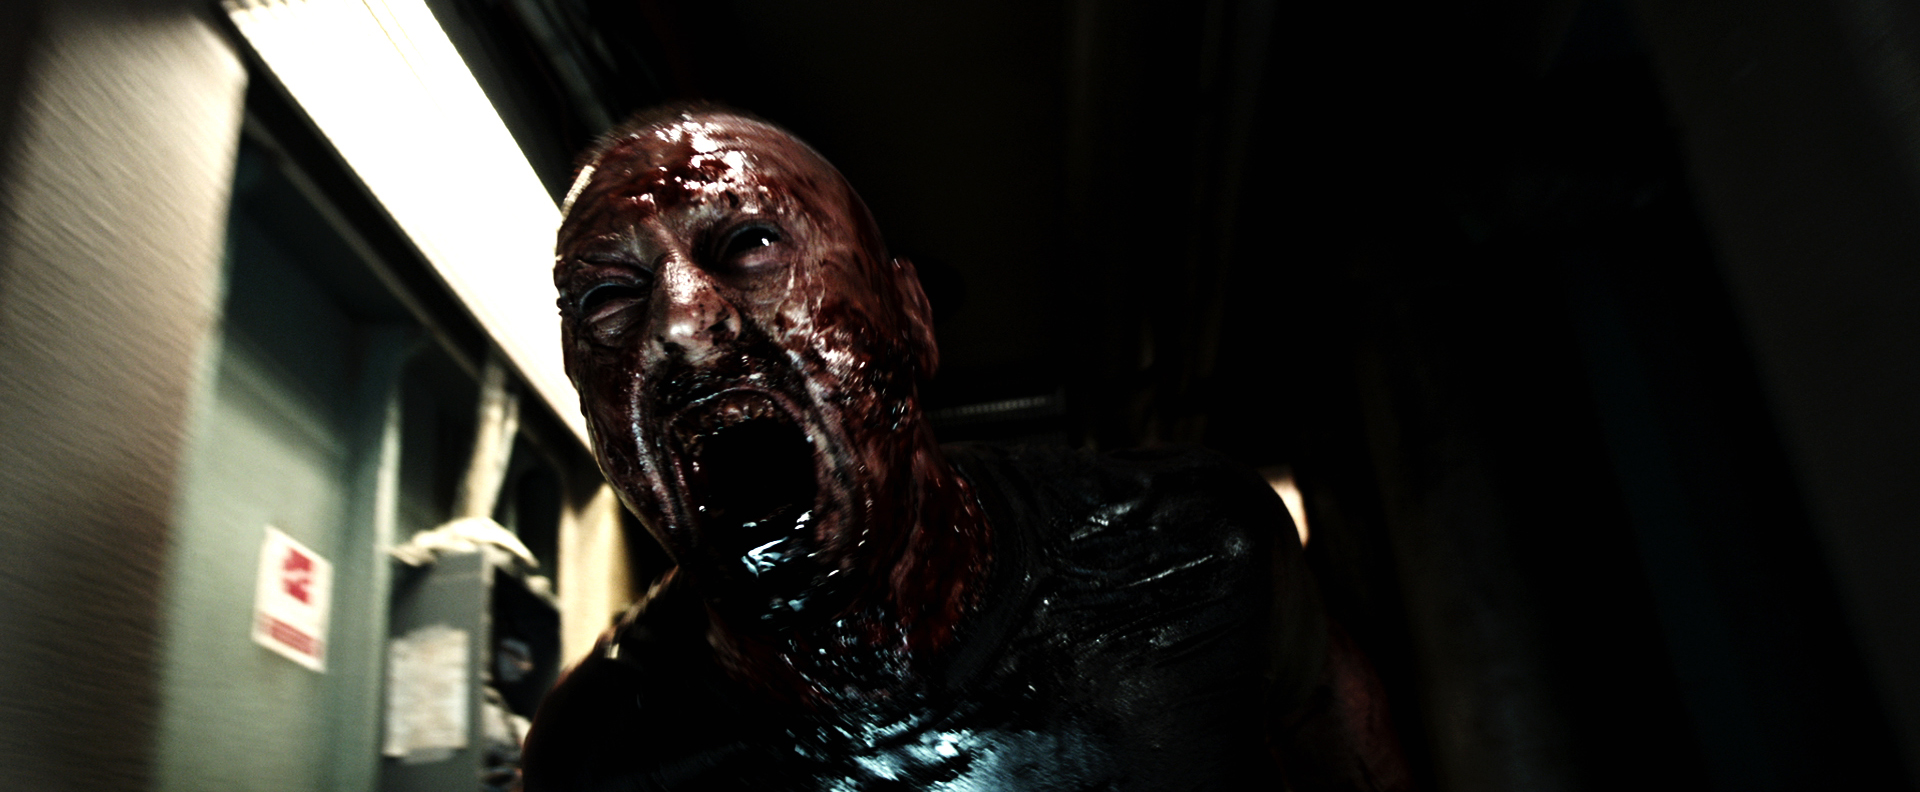 [REC] 4 (Film Review)